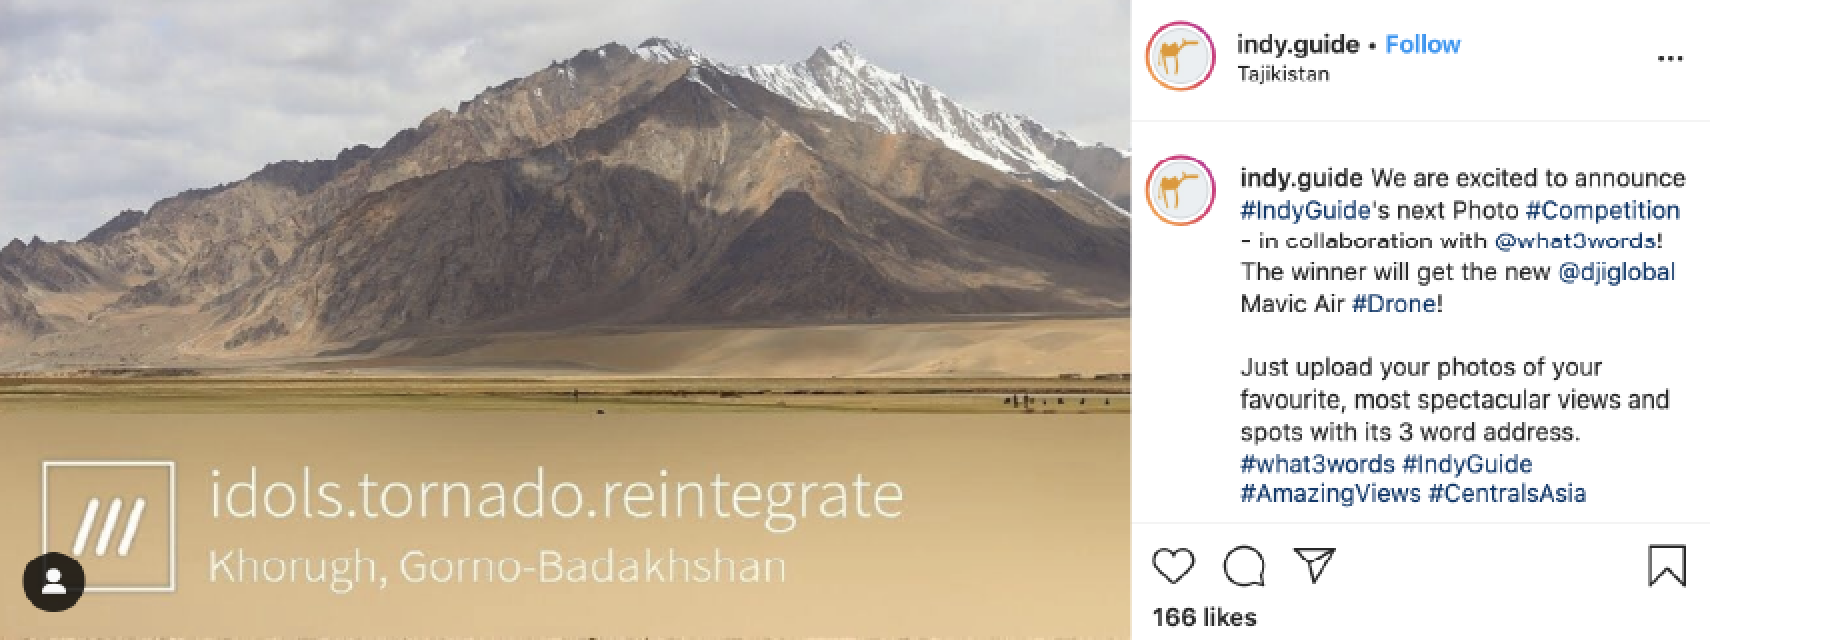 Indy Guide shares winning what3words photo competition shot